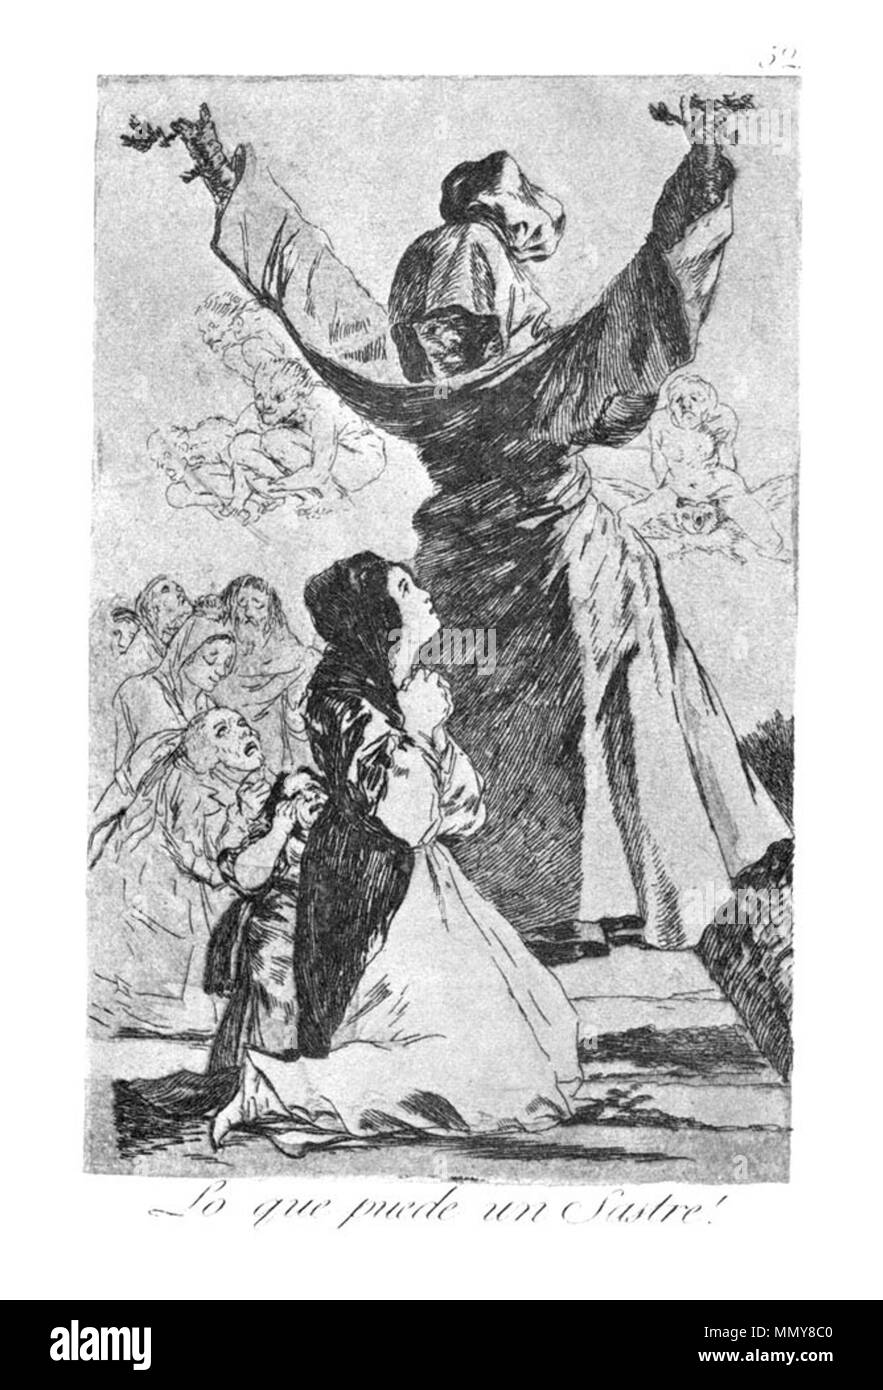 . Los Caprichos is a set of 80 aquatint prints created by Francisco Goya for release in 1799.  . 1799.   Francisco Goya (1746–1828)   Alternative names Francisco Goya Lucientes, Francisco de Goya y Lucientes, Francisco José Goya Lucientes  Description Spanish painter, printmaker, lithographer, engraver and etcher  Date of birth/death 30 March 1746 16 April 1828  Location of birth/death Fuendetodos Bordeaux  Work location Madrid, Zaragoza, Bordeaux  Authority control  : Q5432 VIAF:?54343141 ISNI:?0000 0001 2280 1608 ULAN:?500118936 LCCN:?n79003363 NLA:?36545788 WorldCat Goya - Caprichos (52 - Stock Image